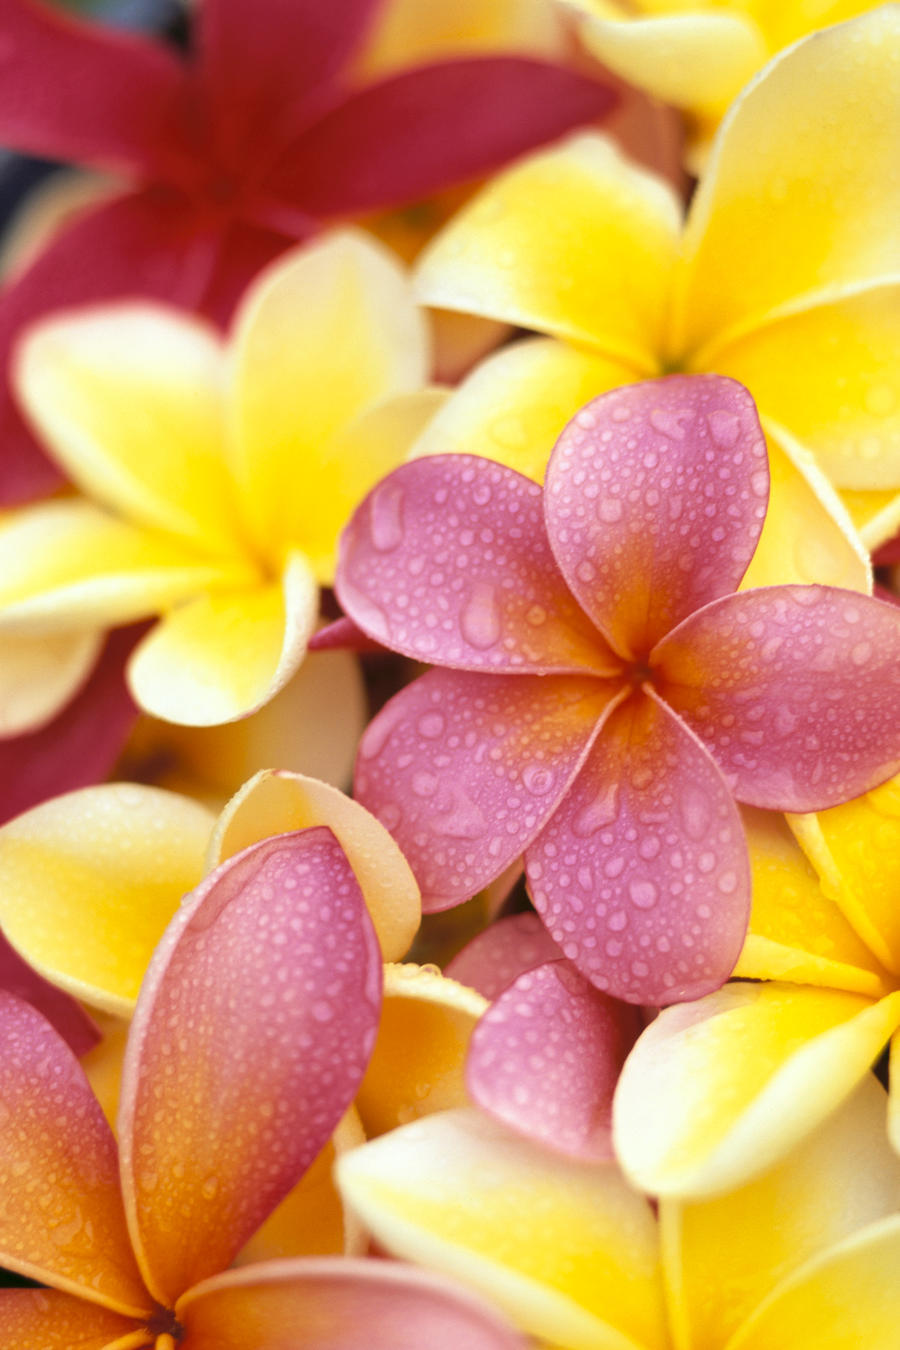 Studio shot of yellow and two pink plumeria flowers water drops studio shot of yellow and two pink plumeria flowers water drops on petals dhlflorist Gallery